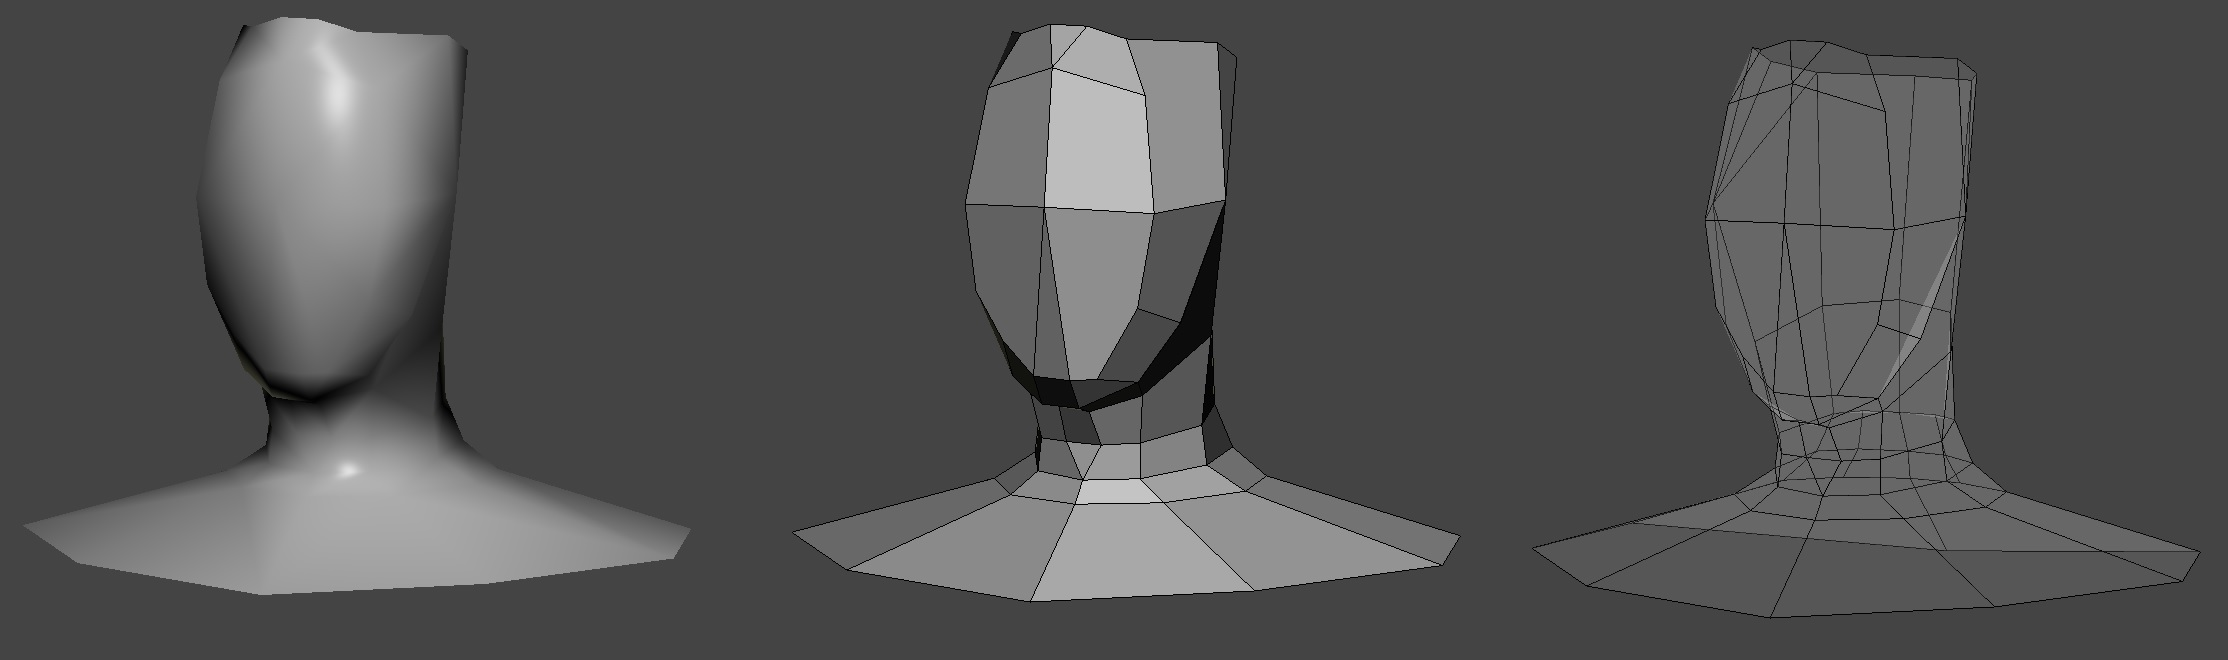 I made a head  What about the face? | ClassDev